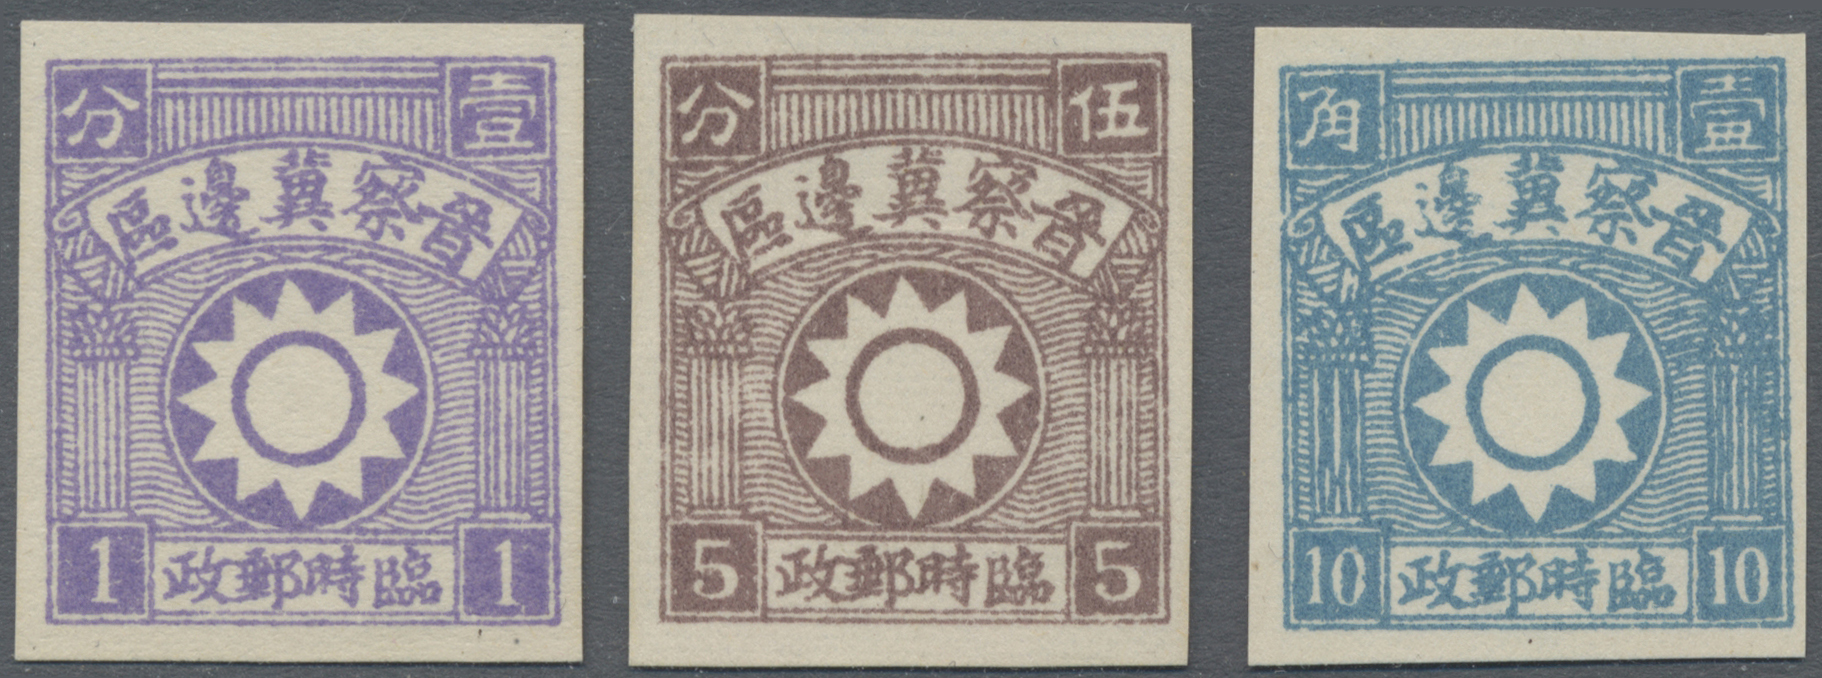 Lot 05003 - China - Volksrepublik - Provinzen  -  Auktionshaus Christoph Gärtner GmbH & Co. KG Sale #46 Special Auction China - including Liberated Areas